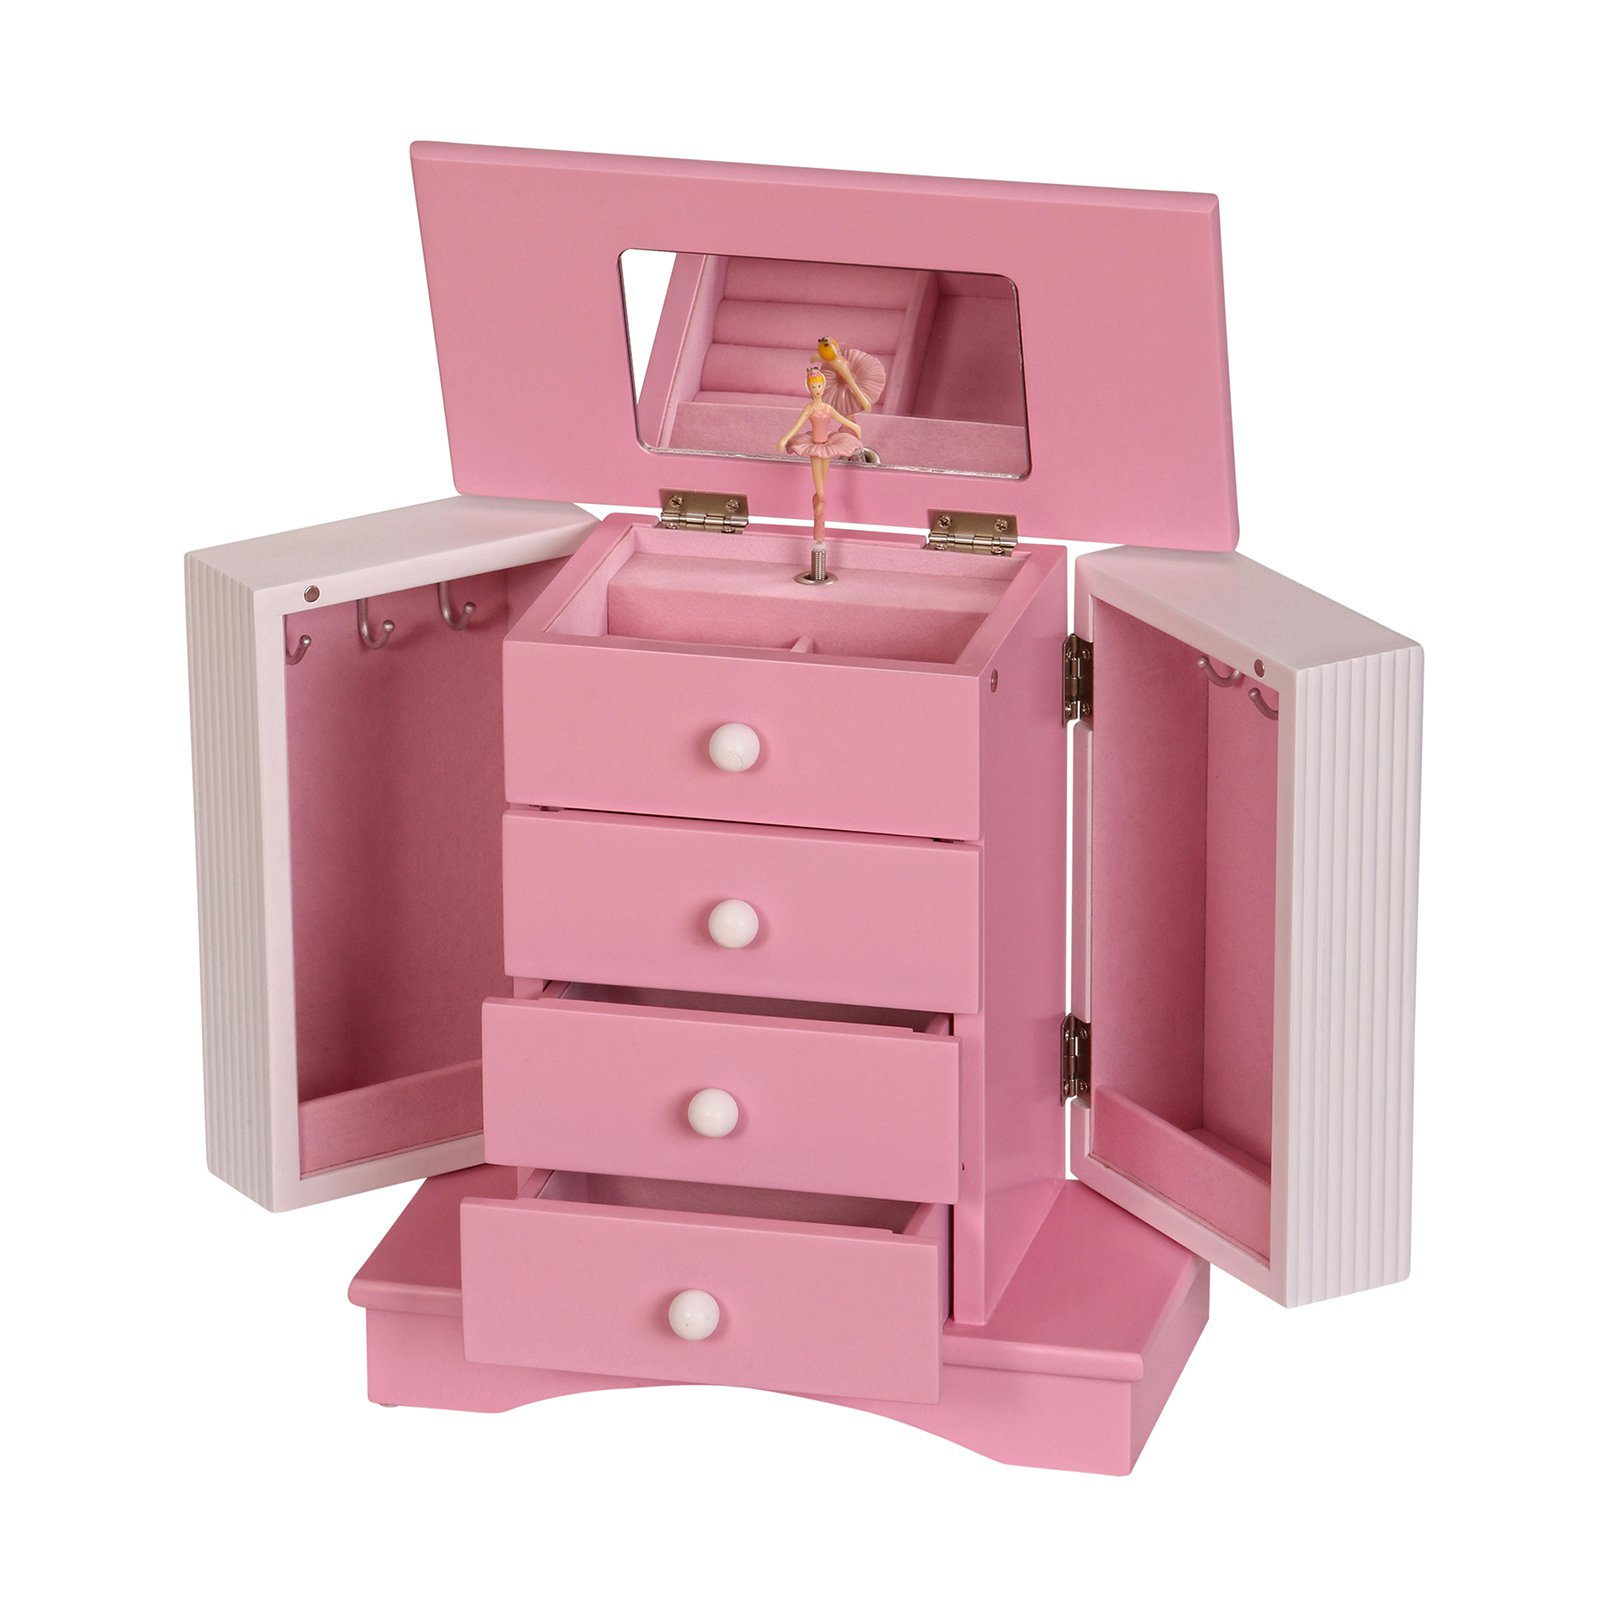 Mele & Co. Elise Girls Wooden Musical Ballerina Jewelry Box